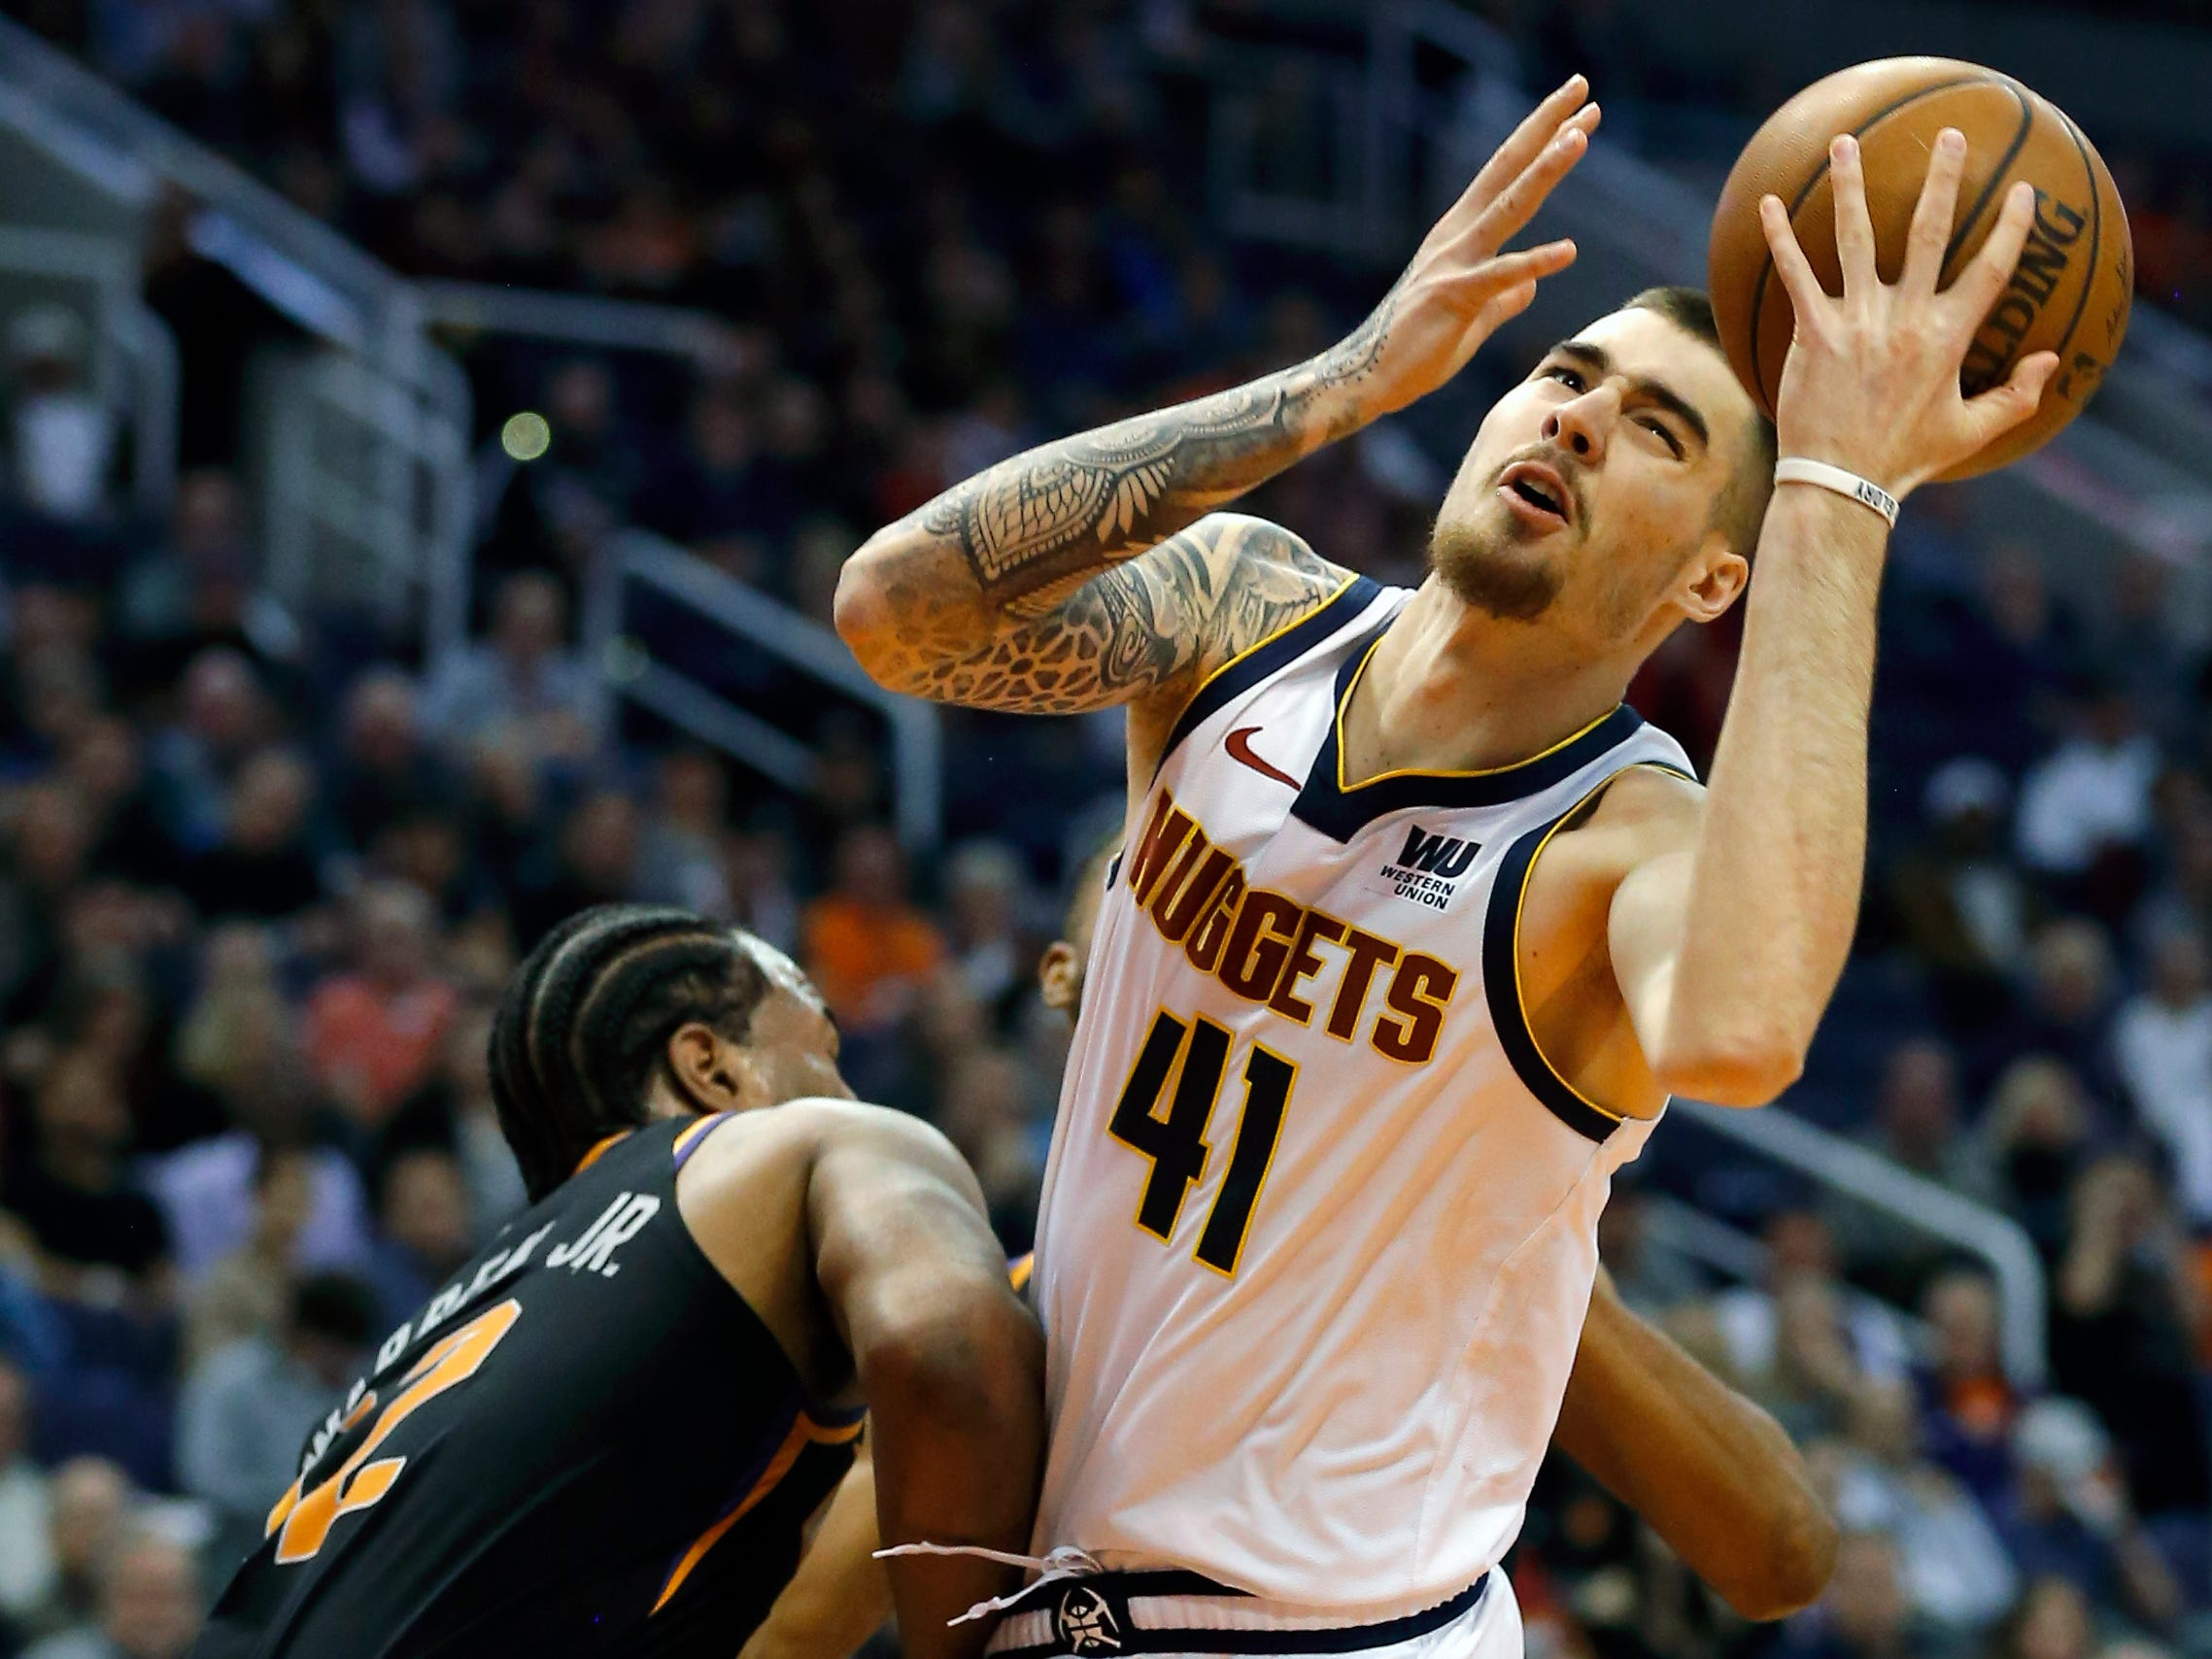 Denver Nuggets forward Juan Hernangomez (41) drives on Phoenix Suns forward T.J. Warren, Saturday, Jan. 12, 2019, in Phoenix. (AP Photo/Rick Scuteri)